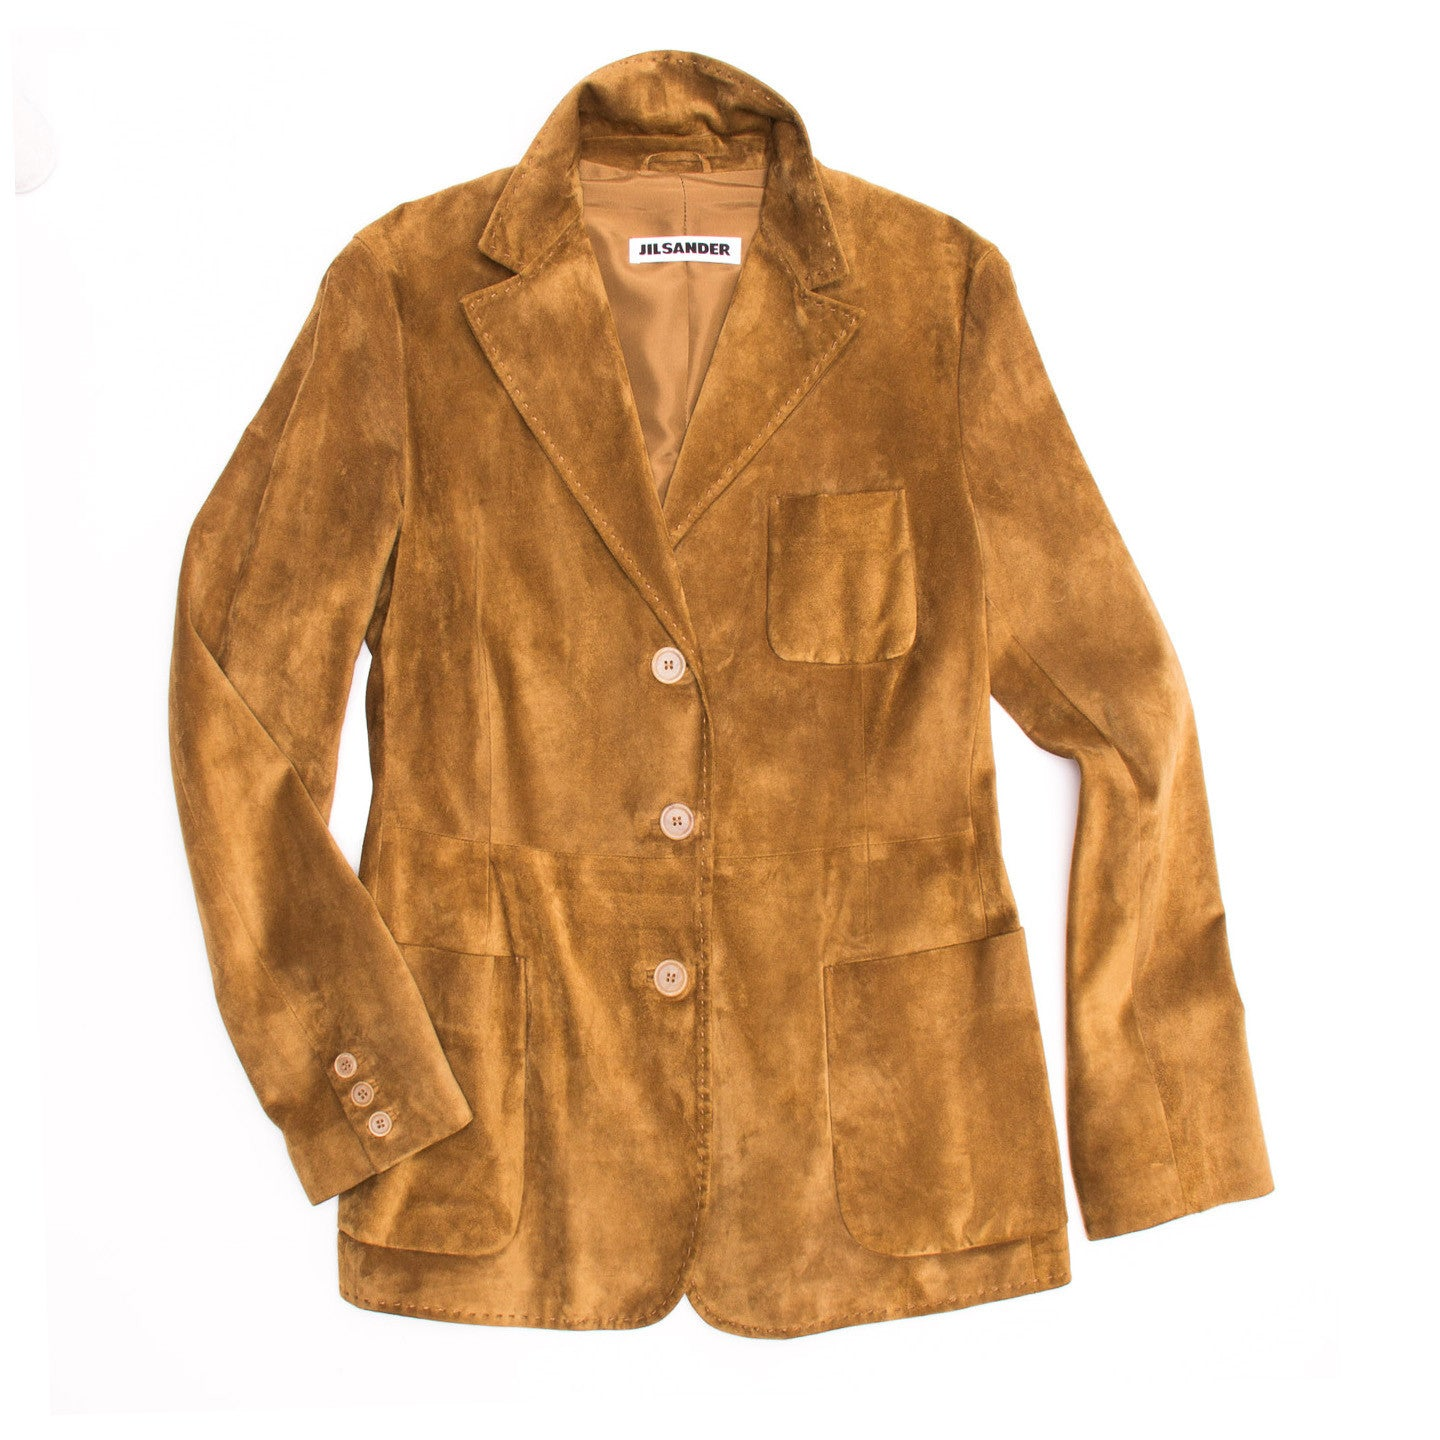 Find authentic preowned Jil Sander Caramel Suede Blazer, size 42 (French) at BunnyJack, where a portion of every sale goes to charity.